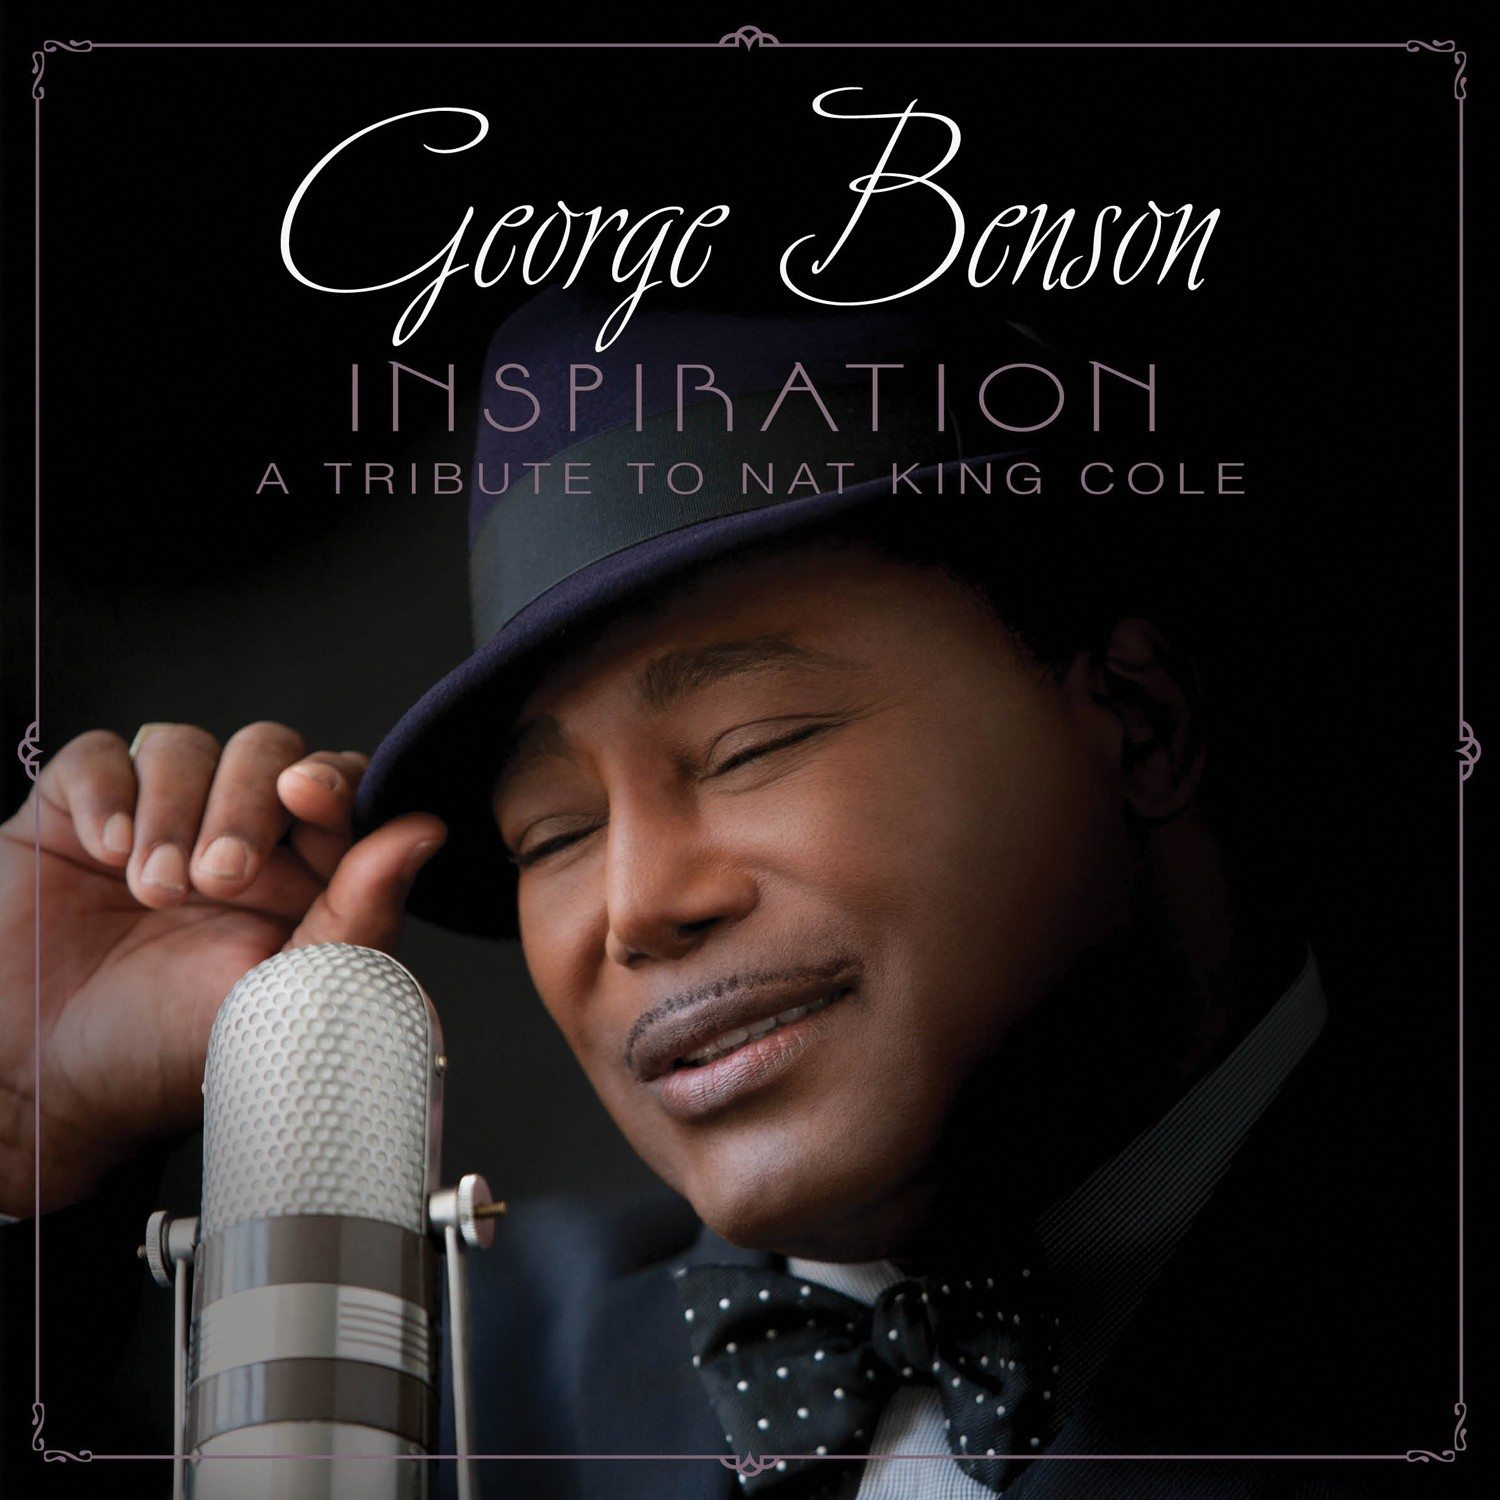 GeorgeBenson_Inspiration_HiRes